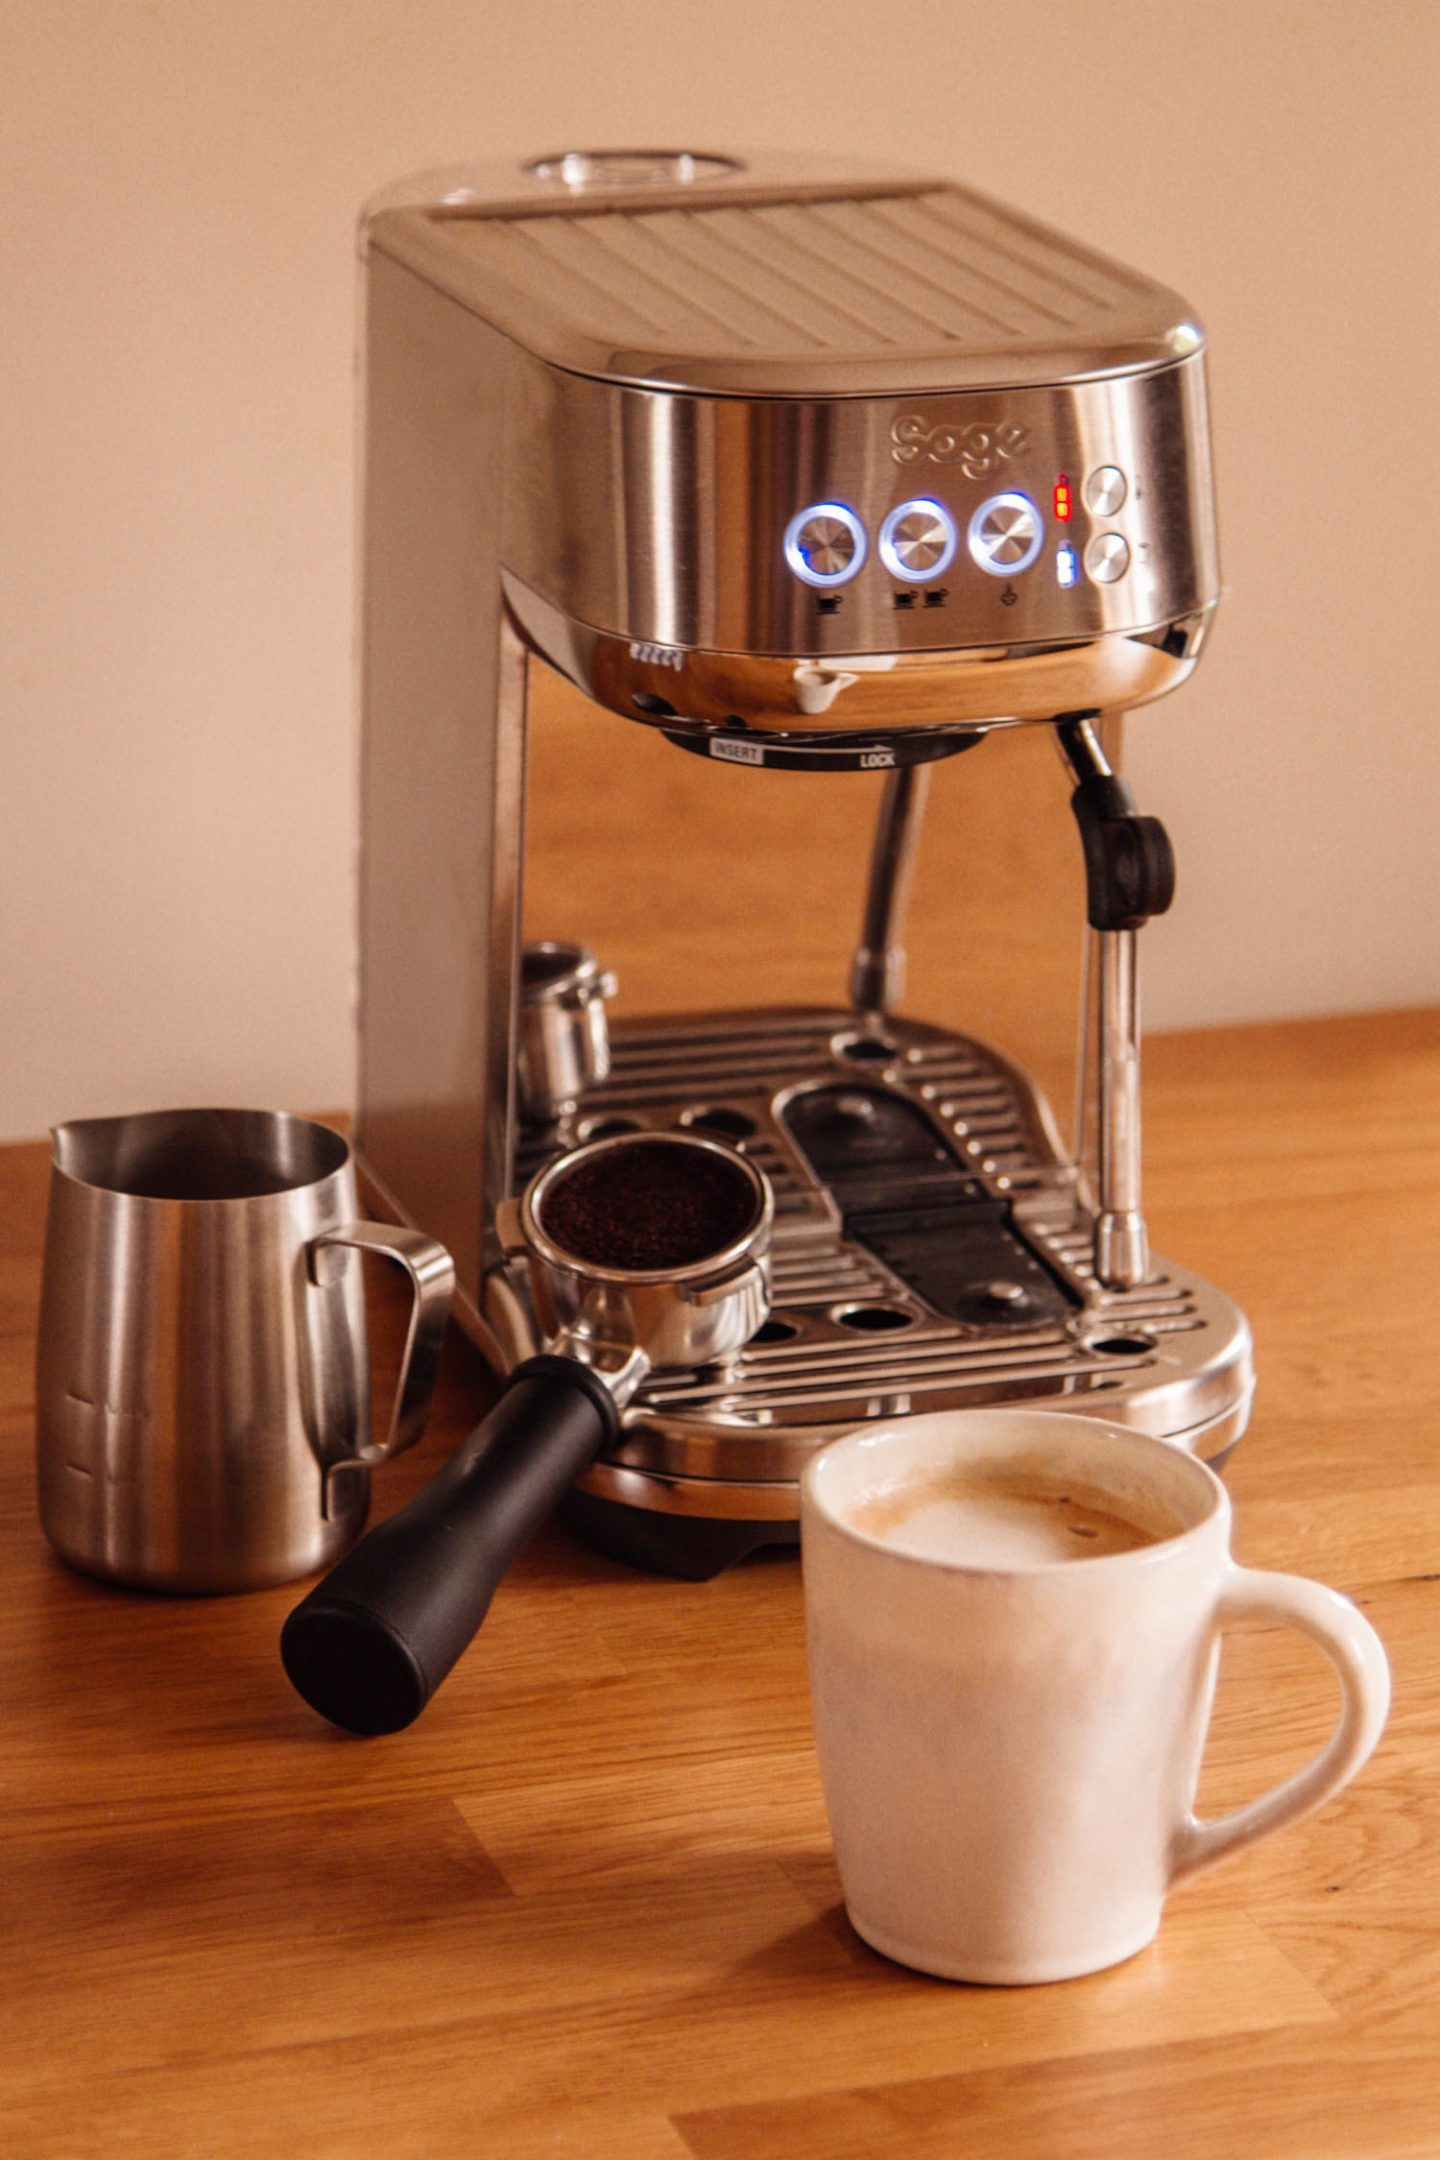 Coffee Machine at Home